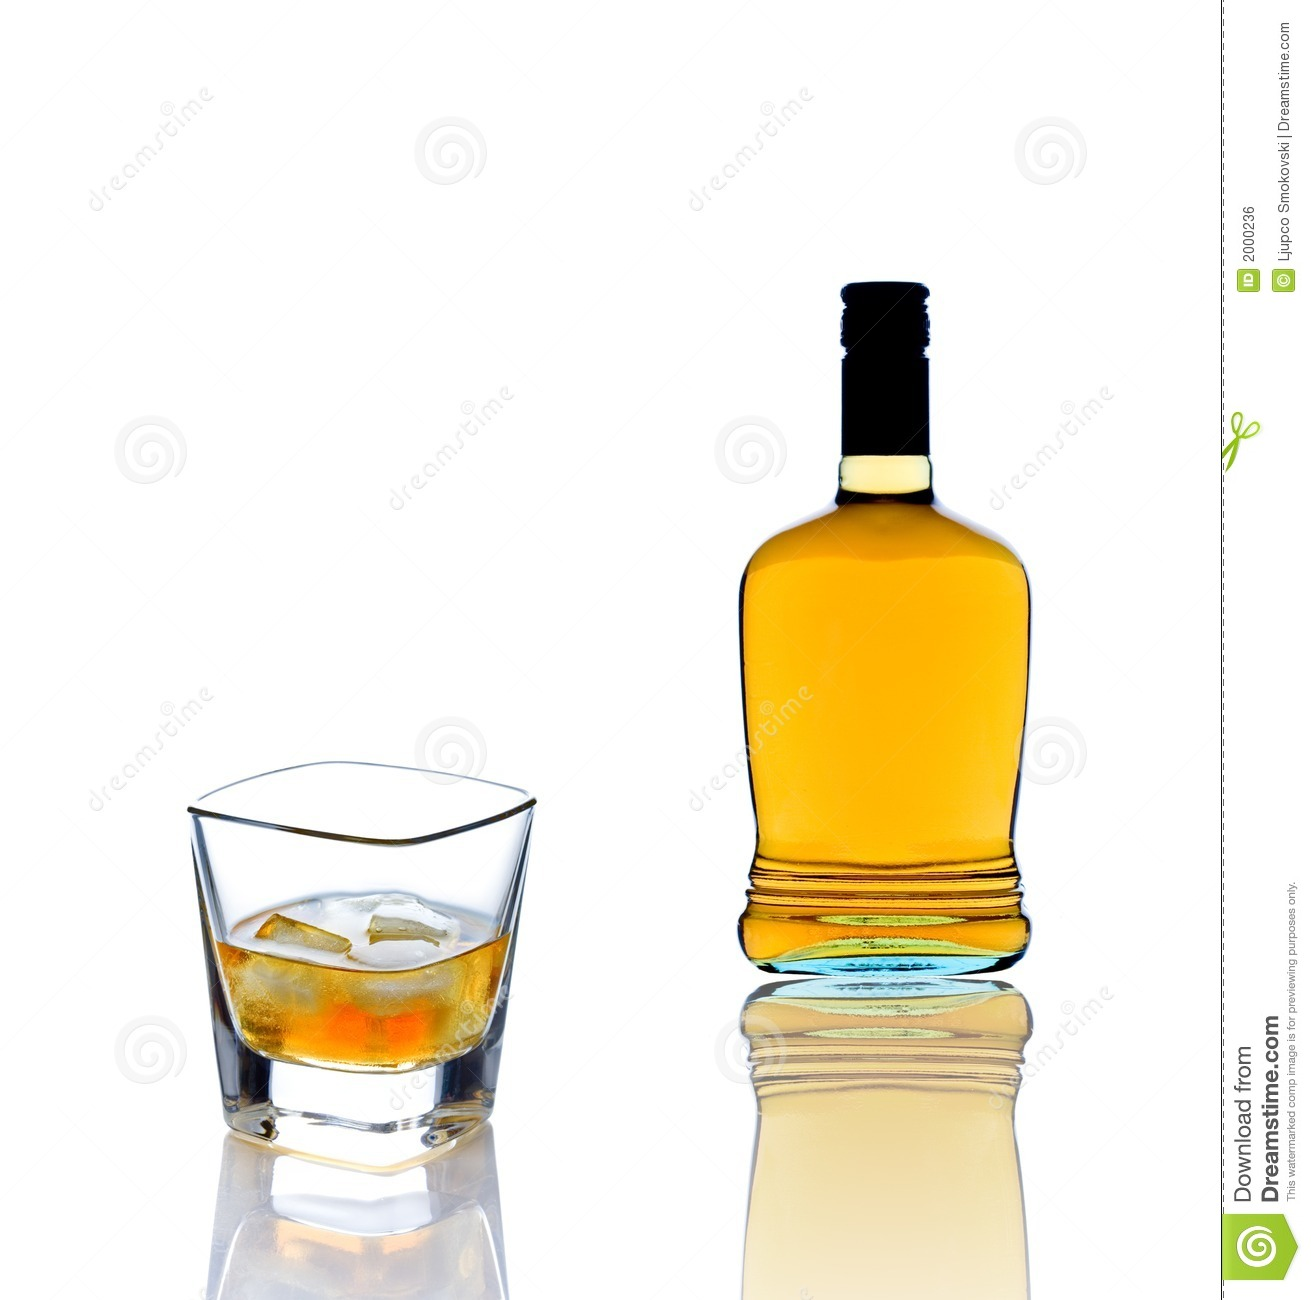 Whisky Bottle And Glass Stock Photo 49256479 : Shutterstock |Whisky Bottle With Glass